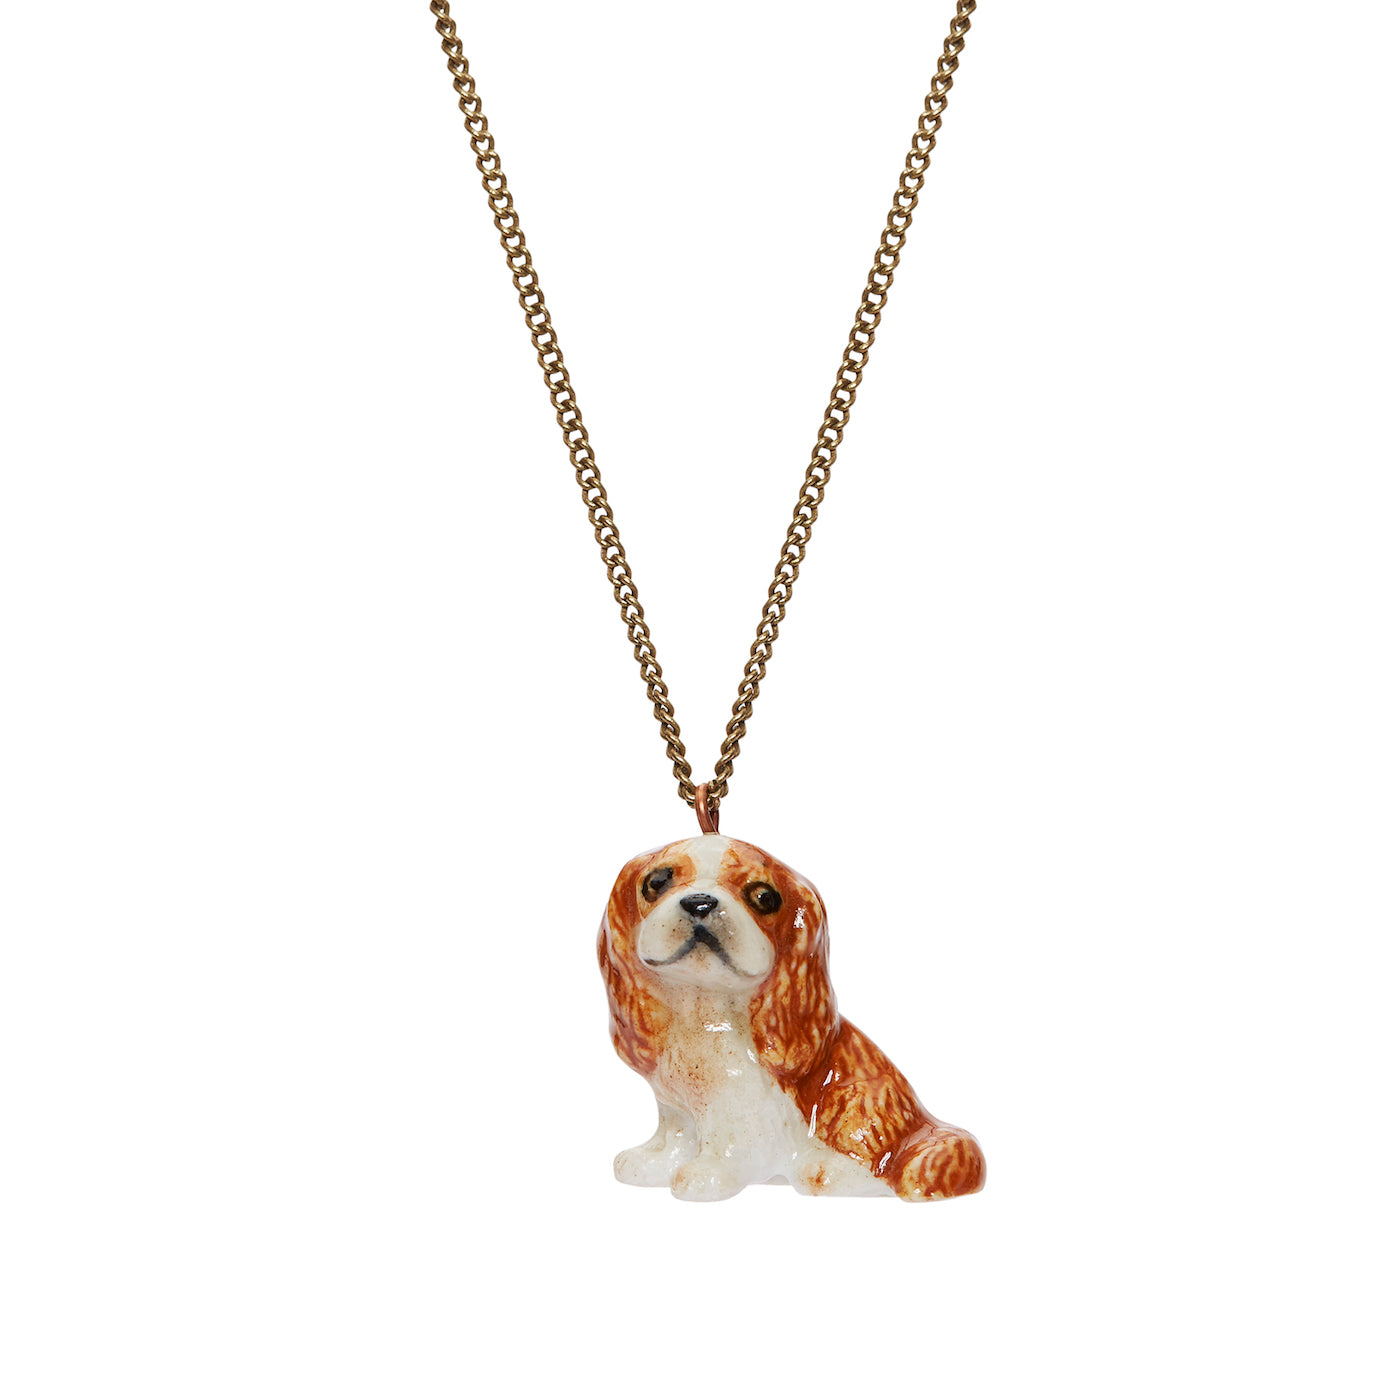 Brown King Charles Spaniel Necklace